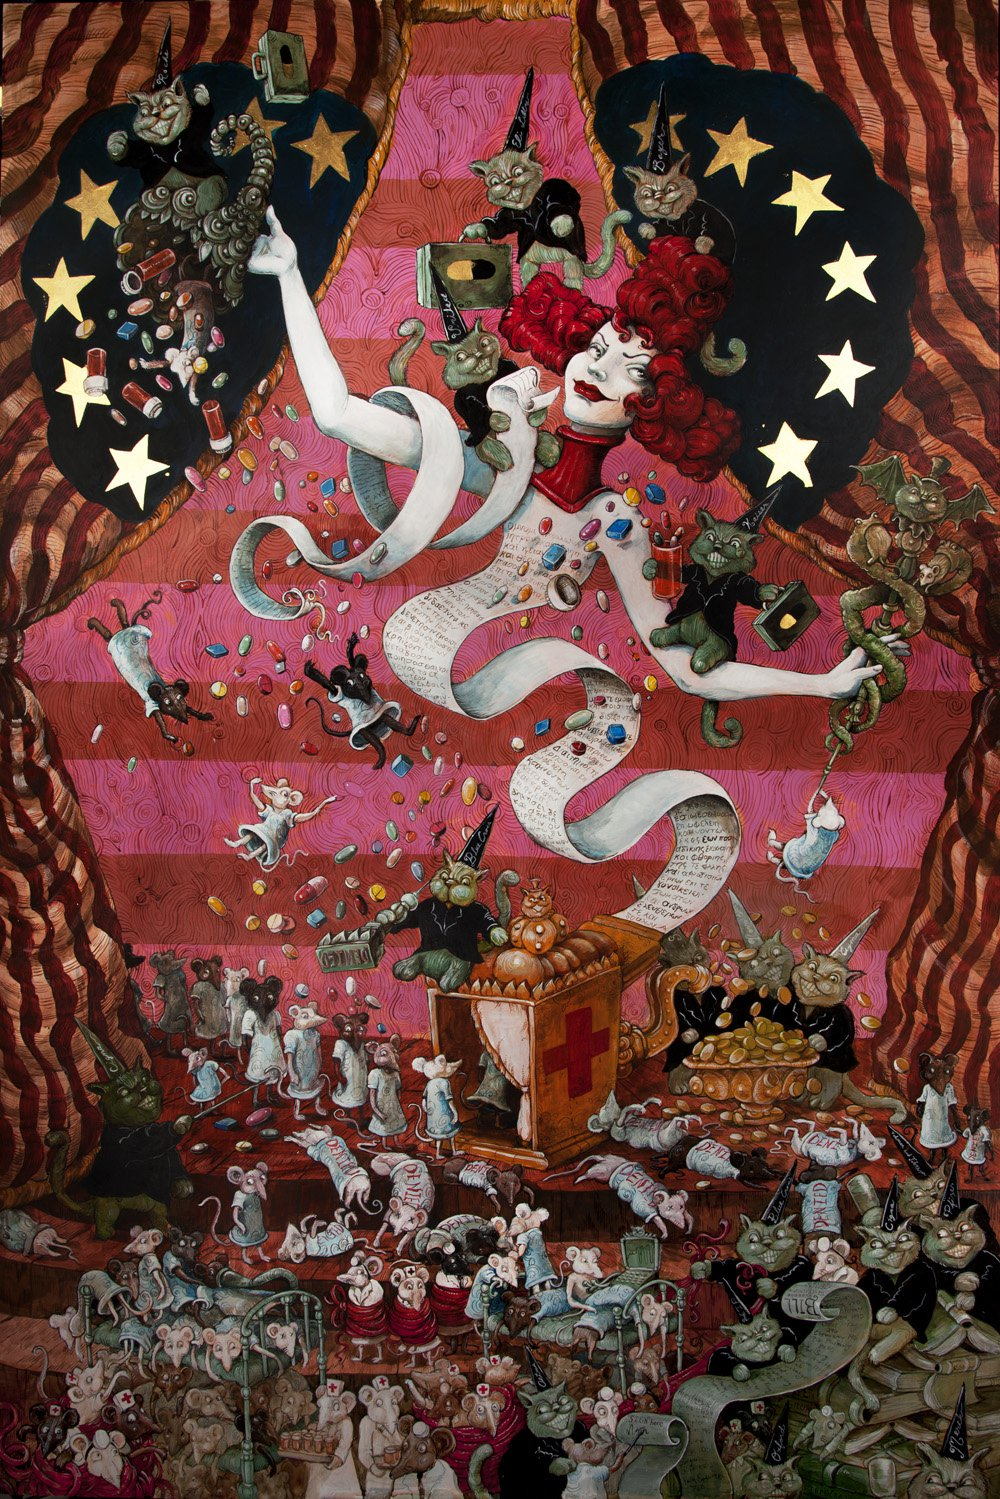 Molly Crabapple And Occupy Wall Street Protest Art The